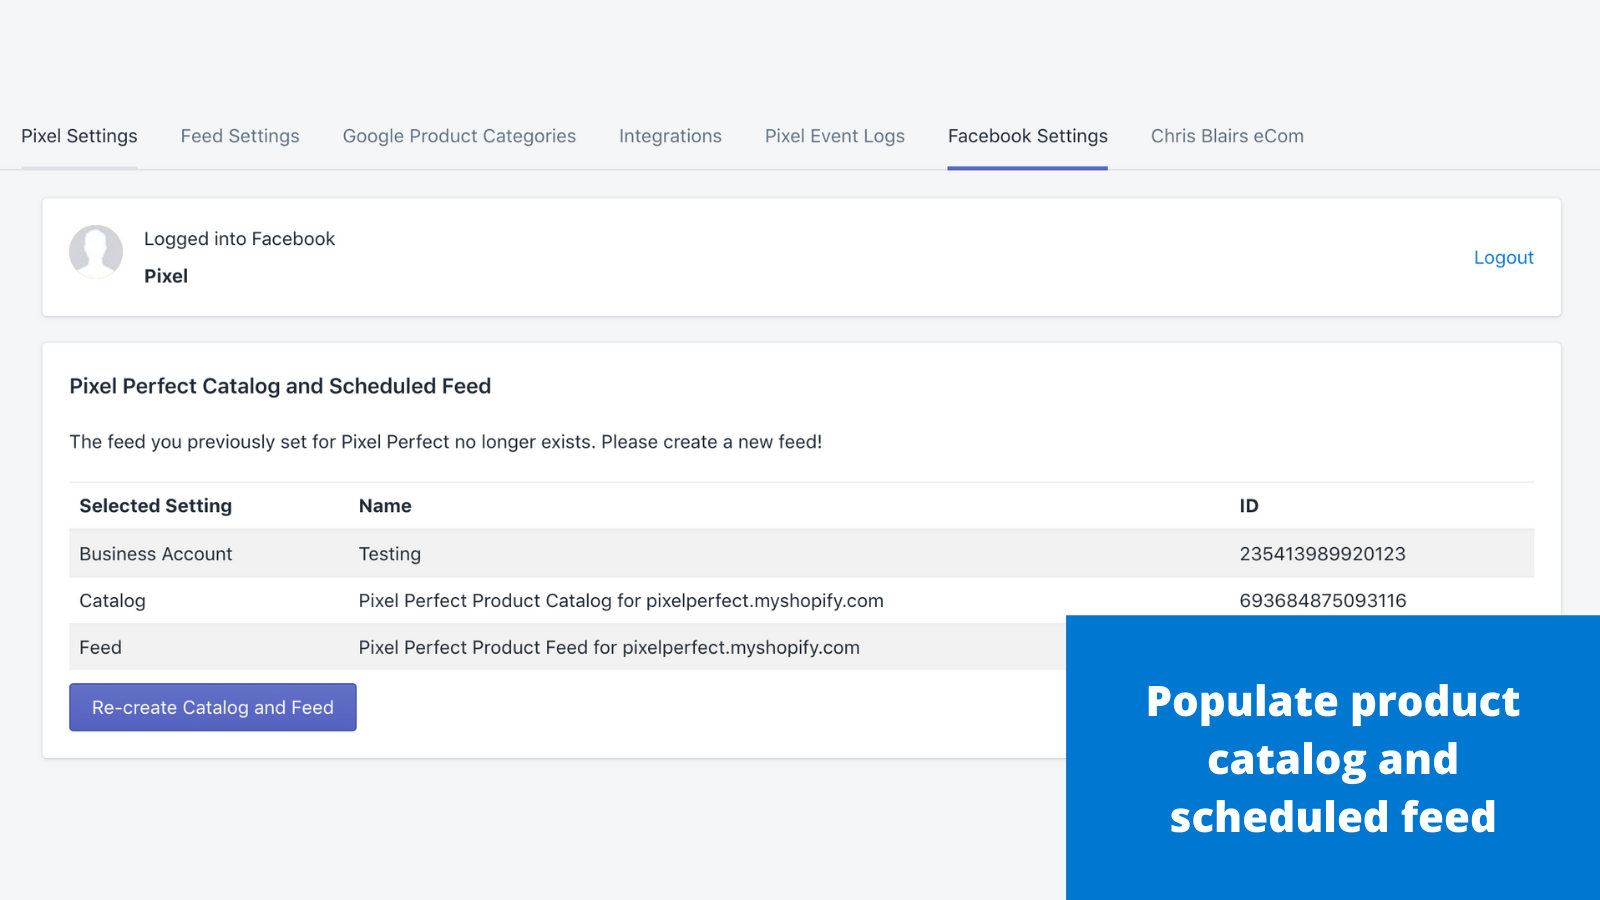 Populate product catalog and scheduled feed